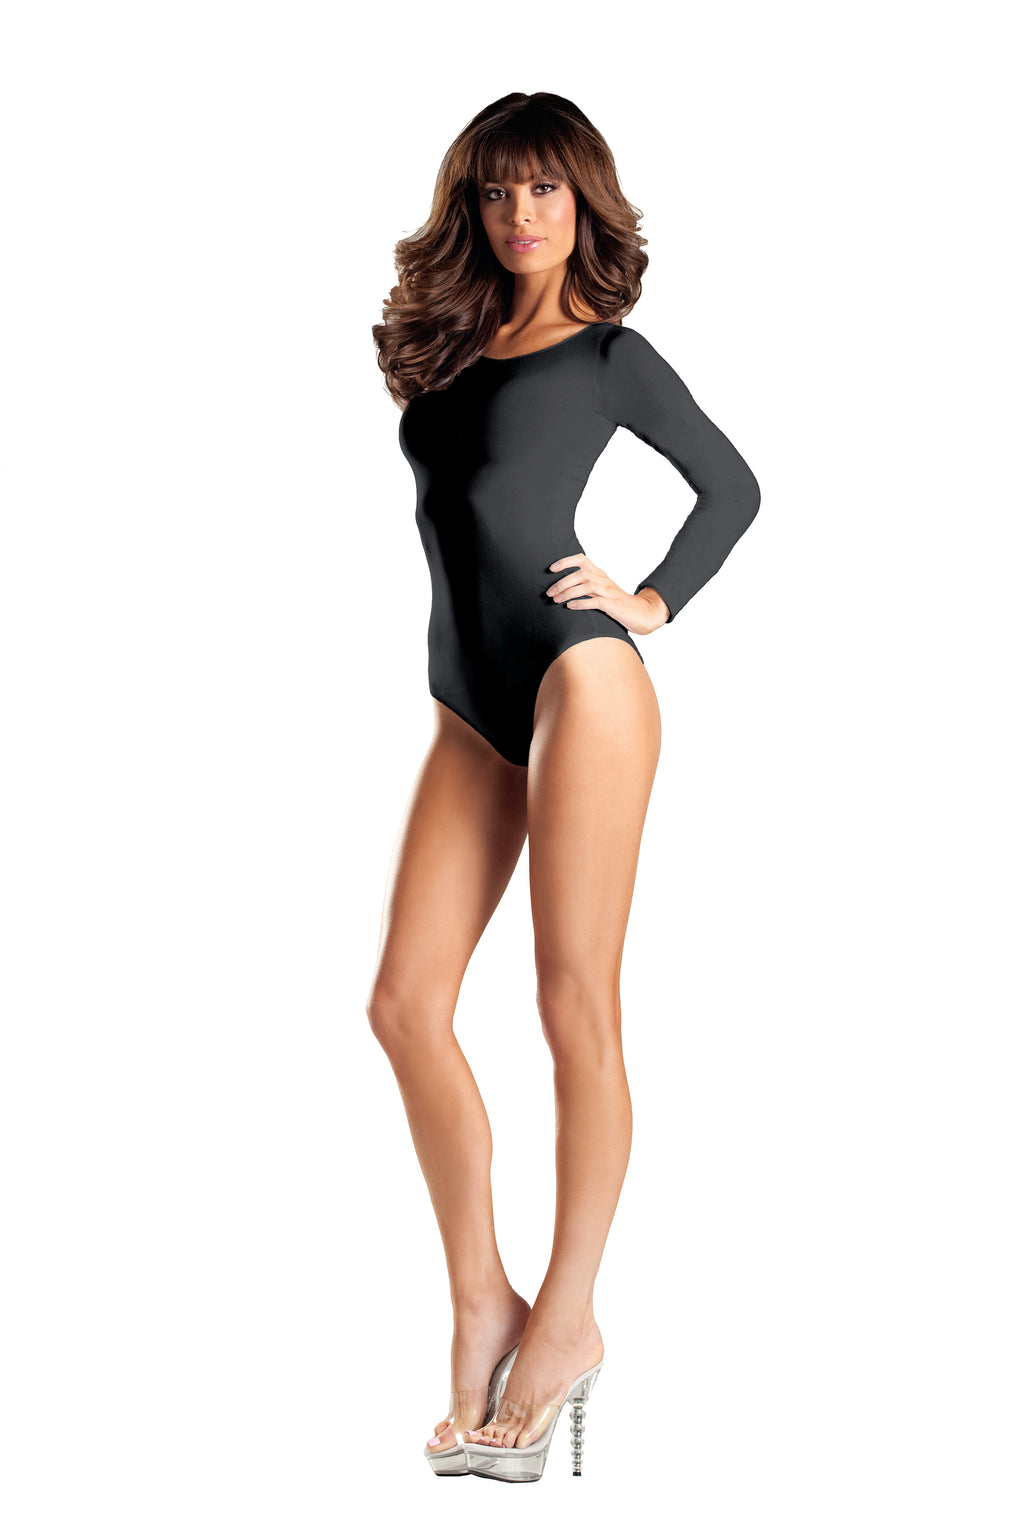 Adult-Women's-Sexy-Beyonce-Single-Ladies-Play-Suit-Halloween-Party-Costume